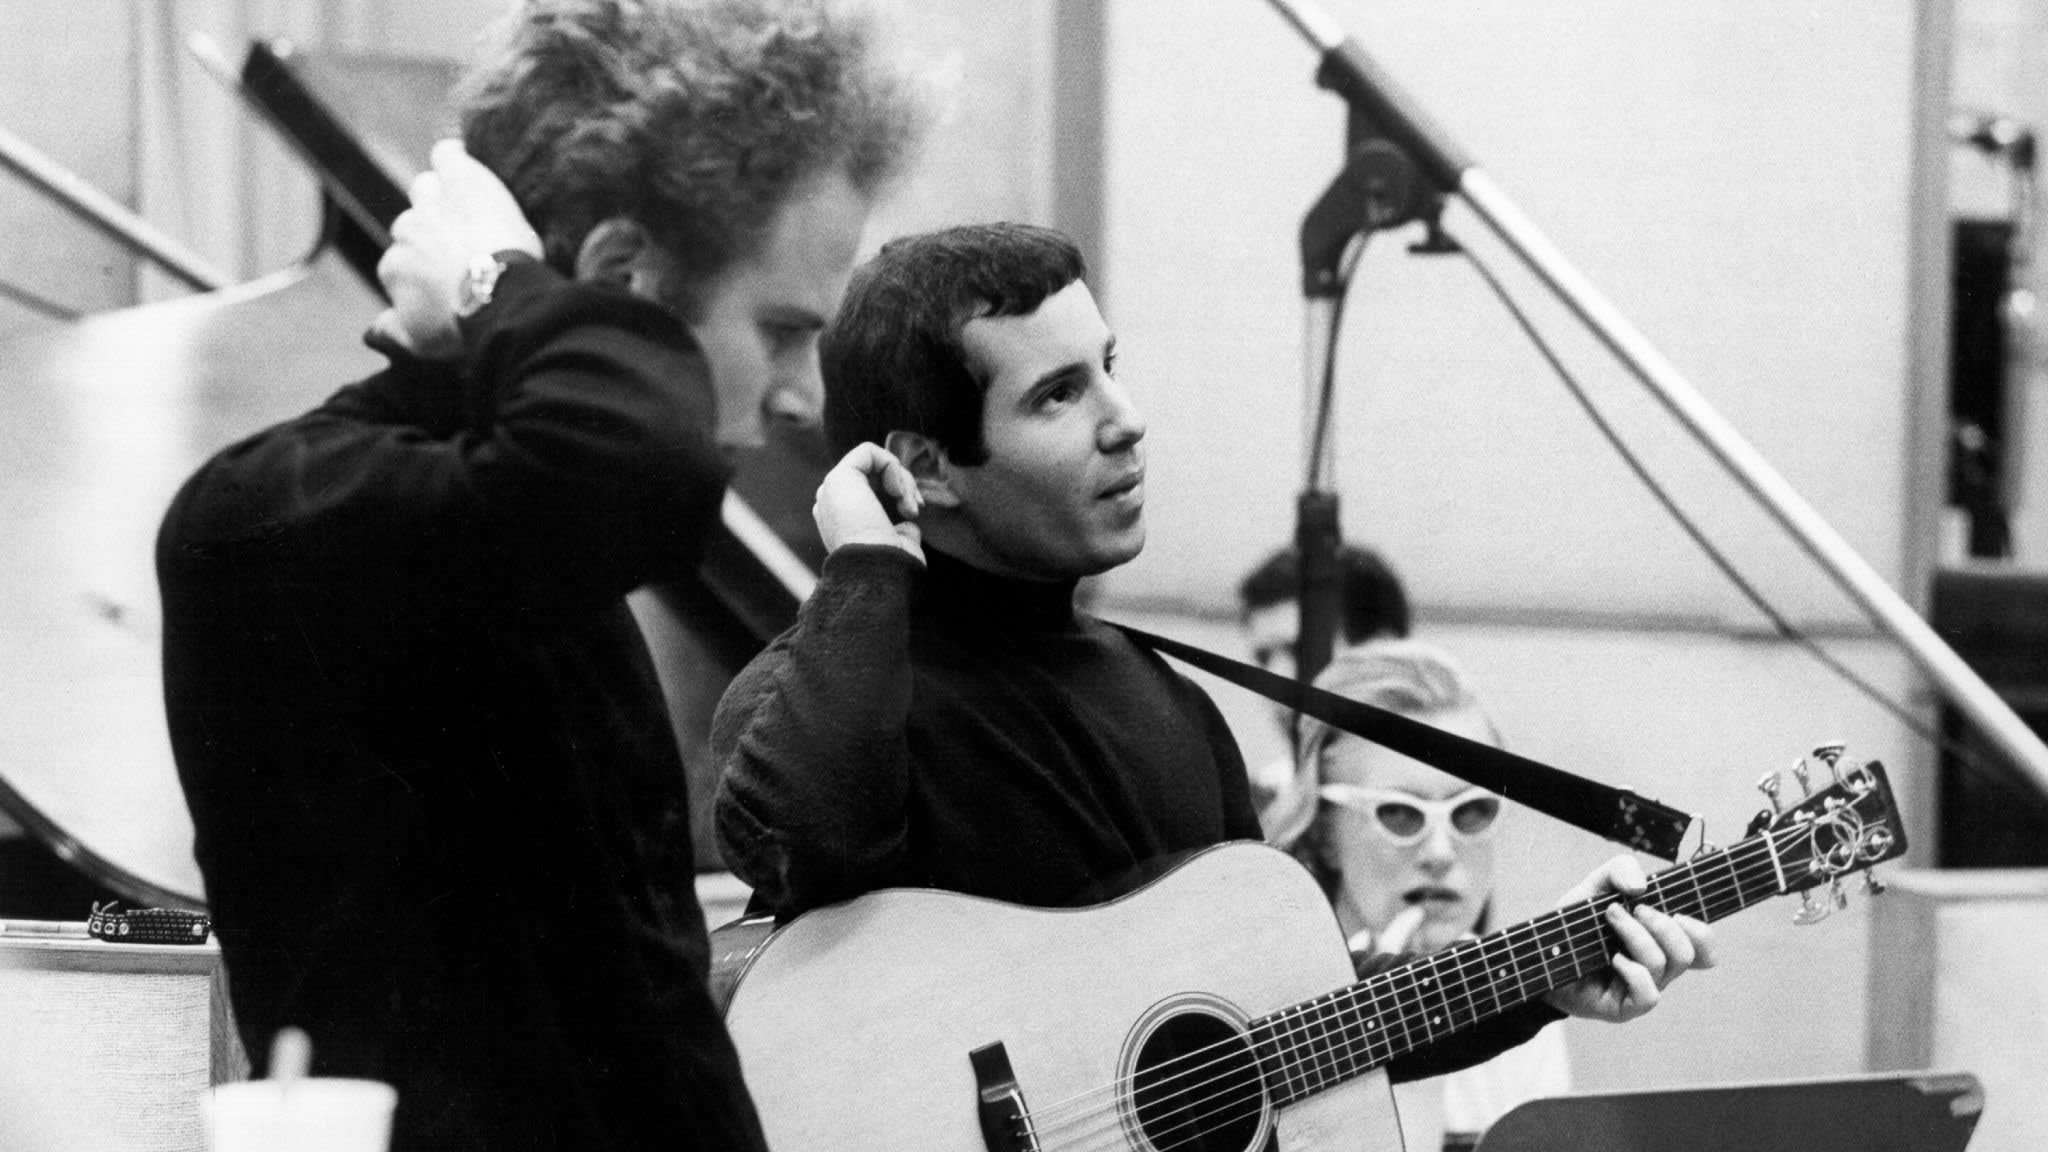 America — Simon & Garfunkel's 1968 anthem is steeped in